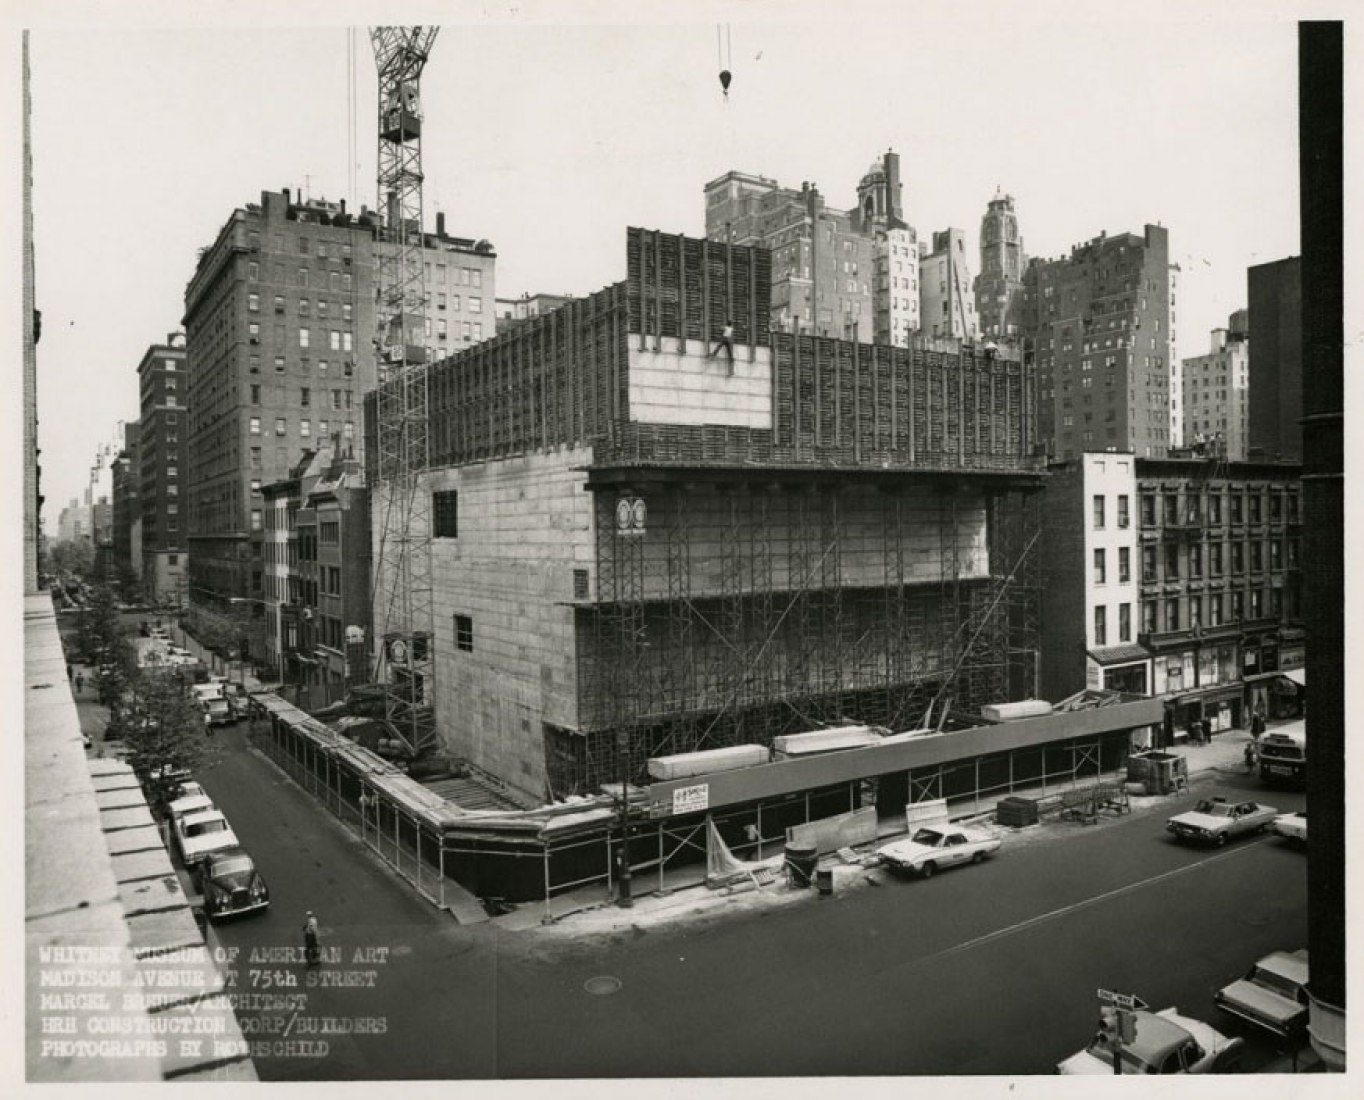 Whitney Museum of American Art. Construction. Photograph © Rothschild.